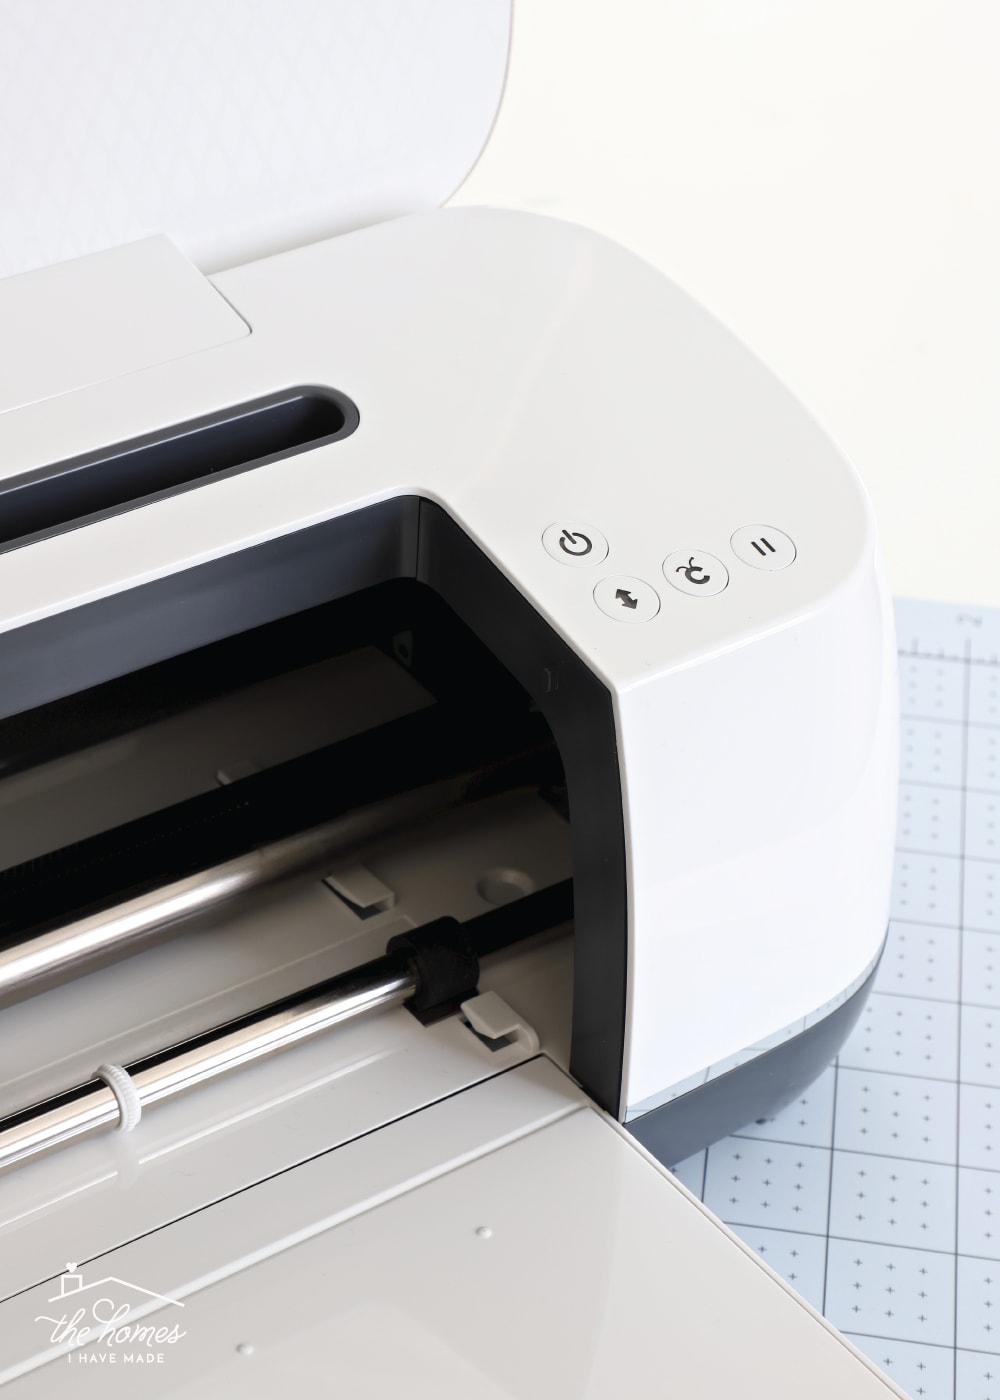 Do you have a Cricut Explore and you're debating an upgrade to the Cricut Maker? Learn everything you need to know about Cricut's newest machine!